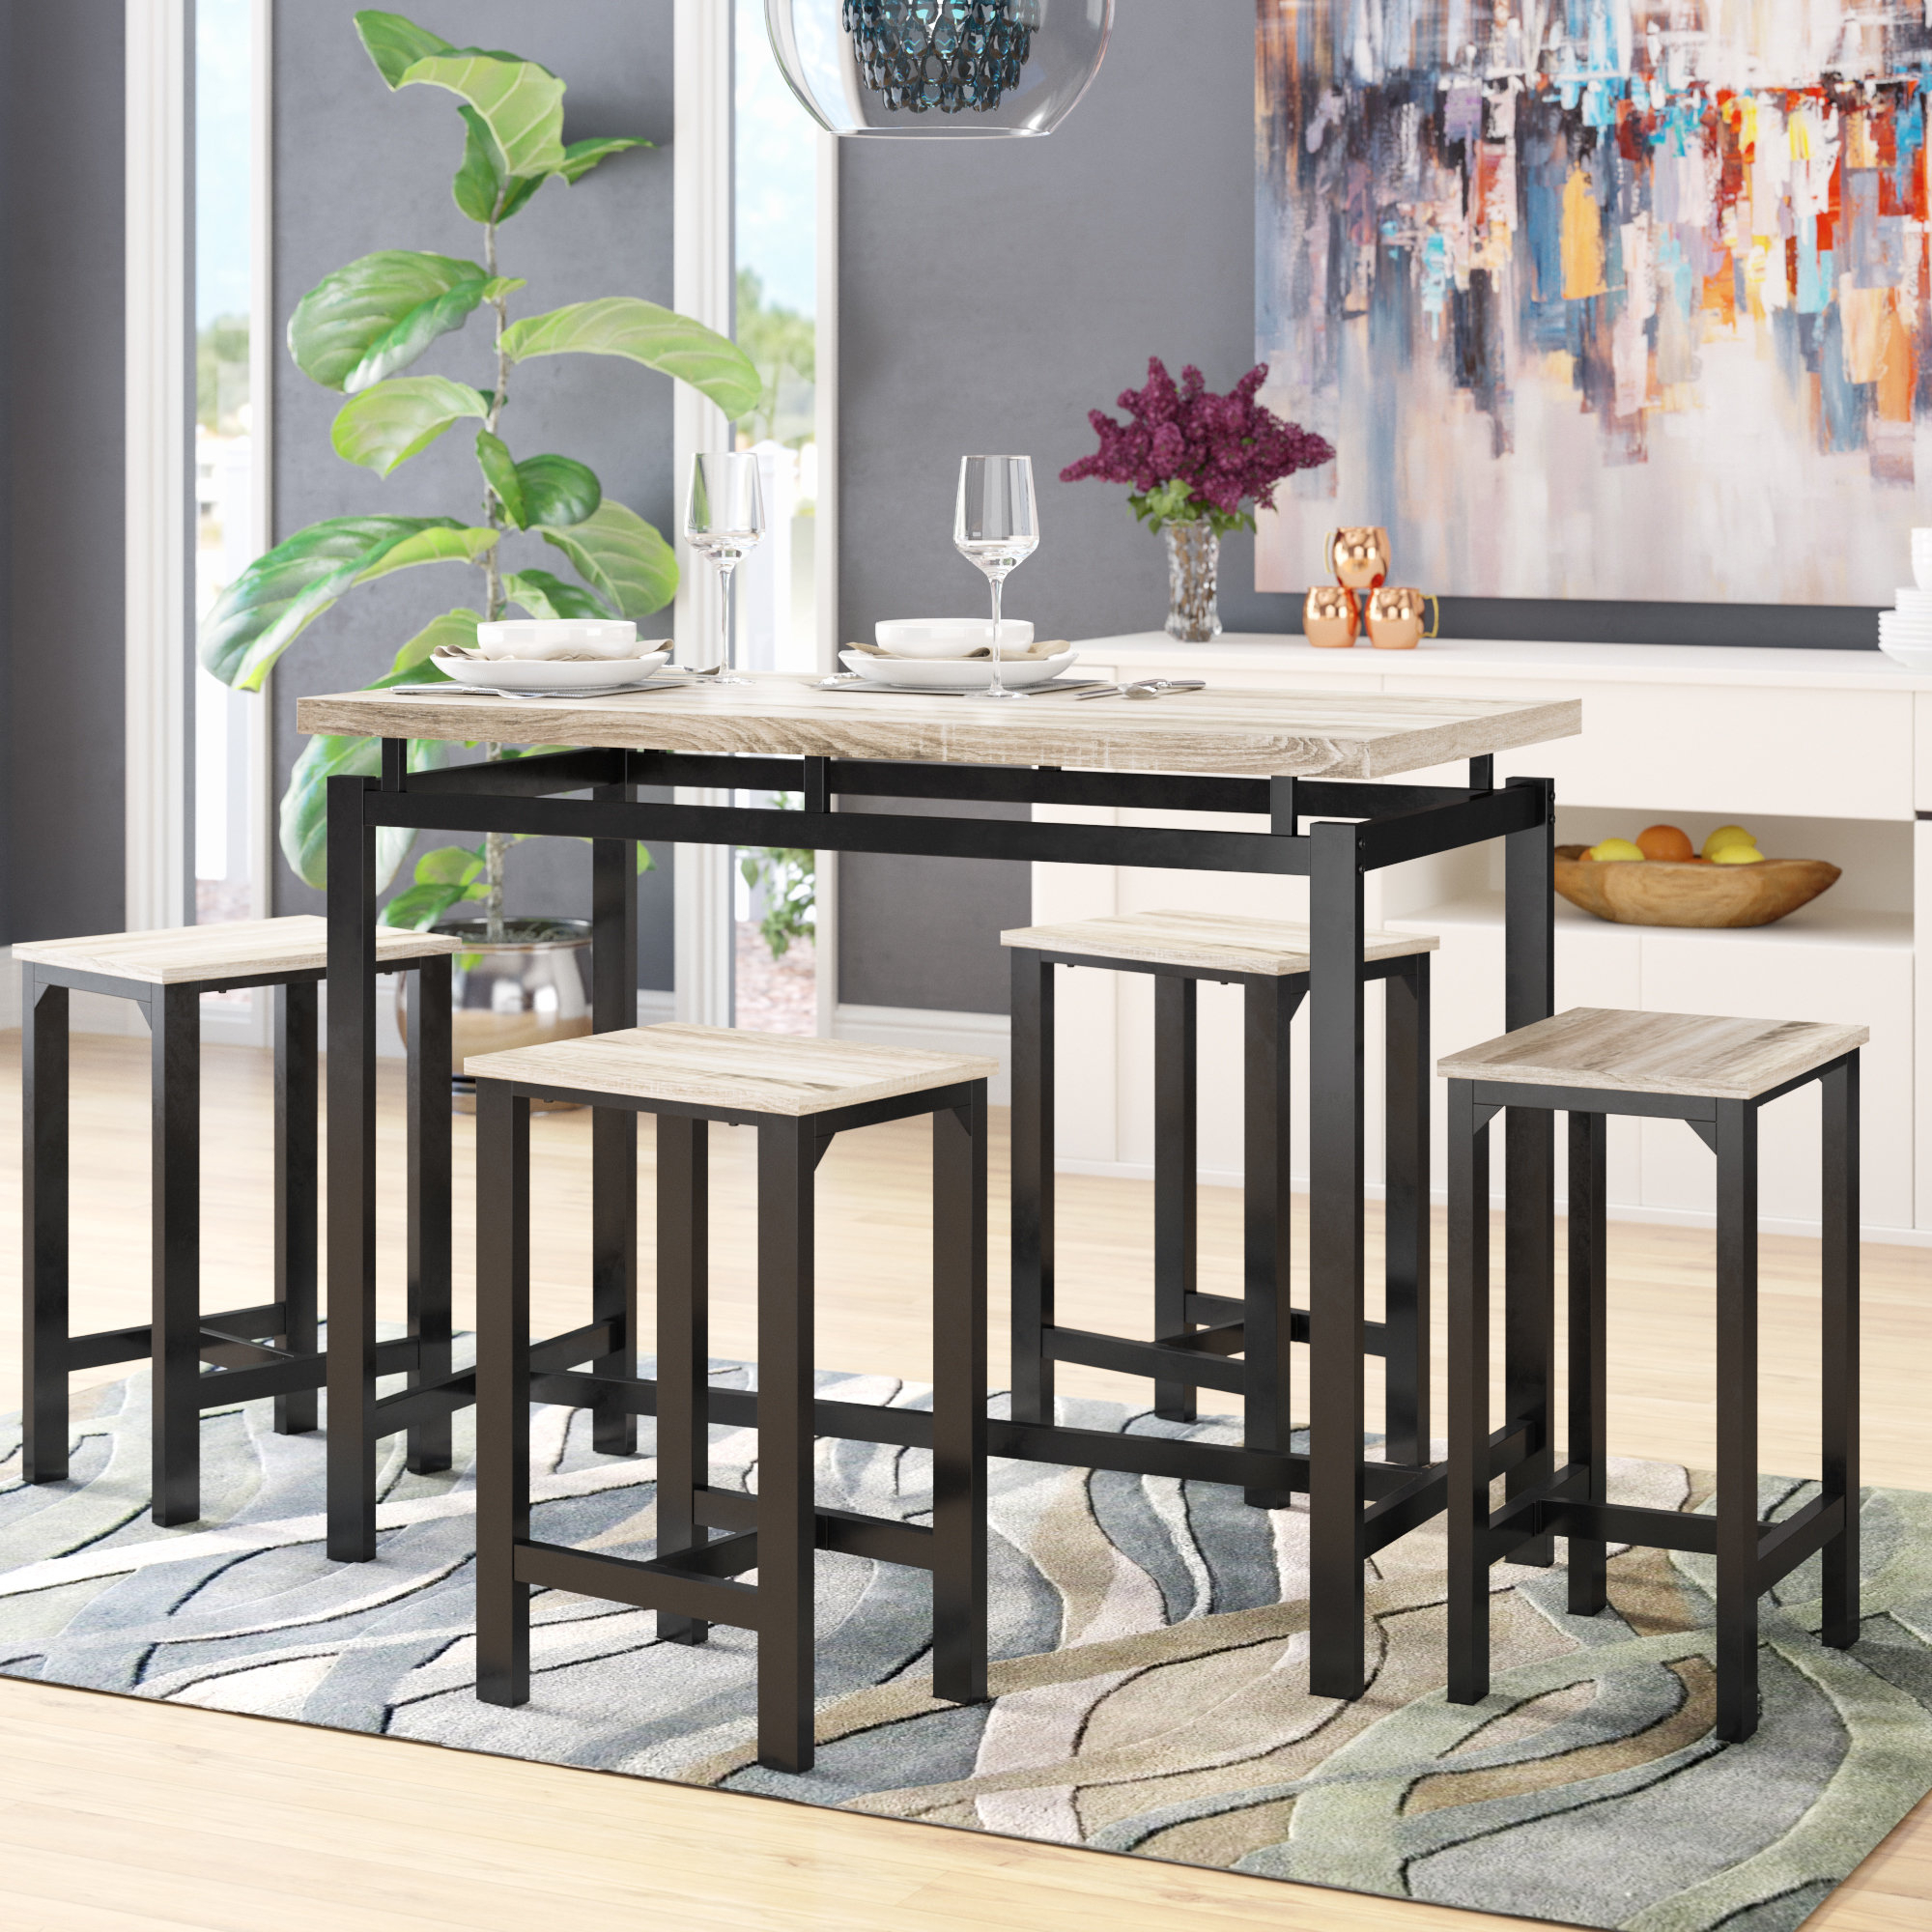 2017 Latitude Run Weatherholt 5 Piece Pub Table Set For Moorehead 3 Piece Counter Height Dining Sets (Gallery 11 of 20)